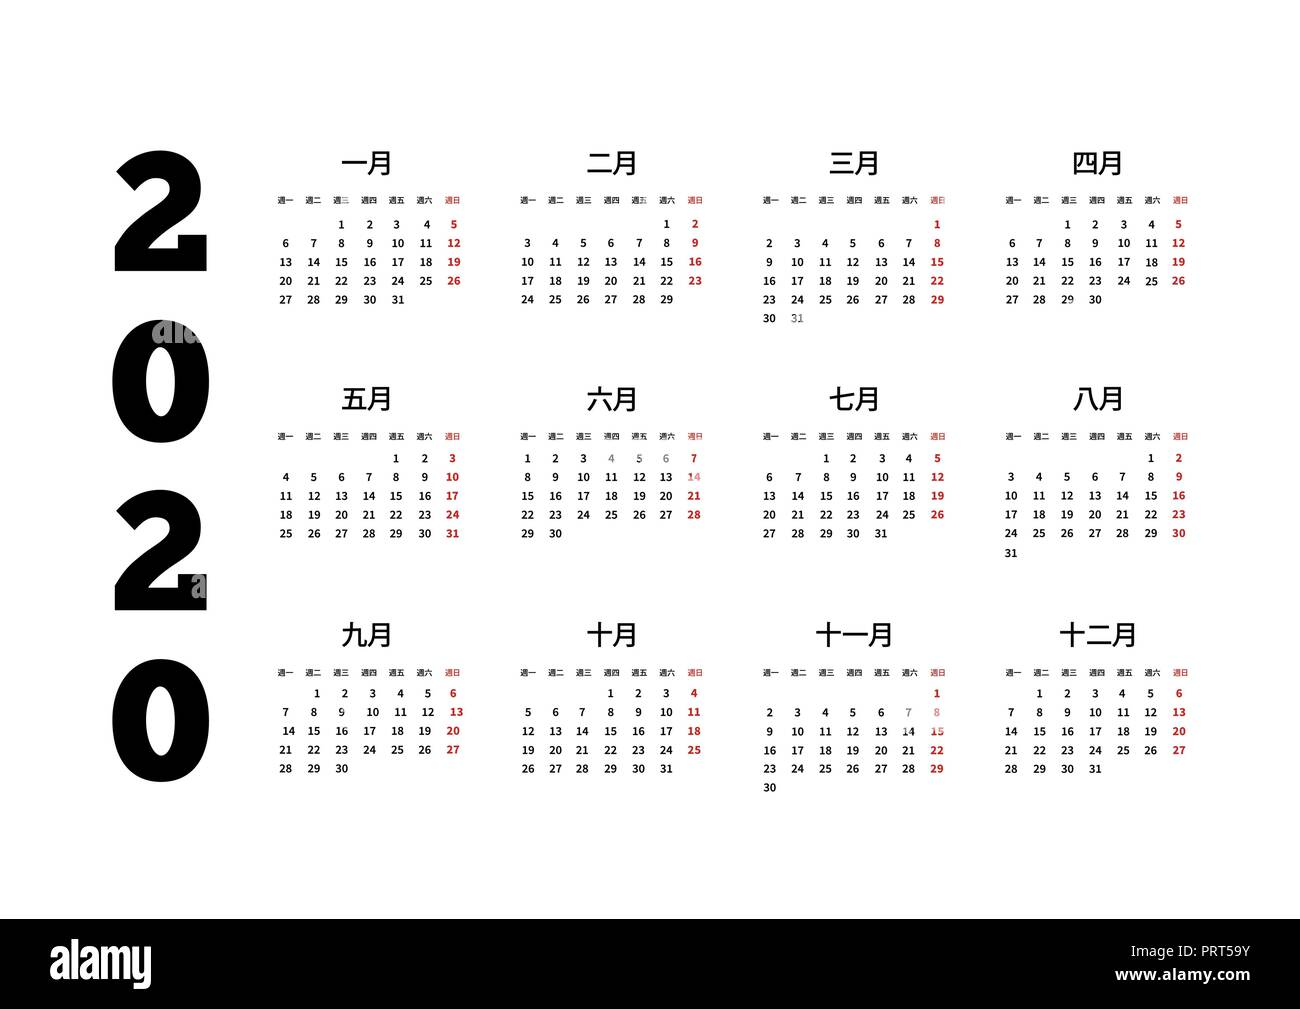 China Calendar 2020 2020 year simple calendar on chinese language, isolated on white